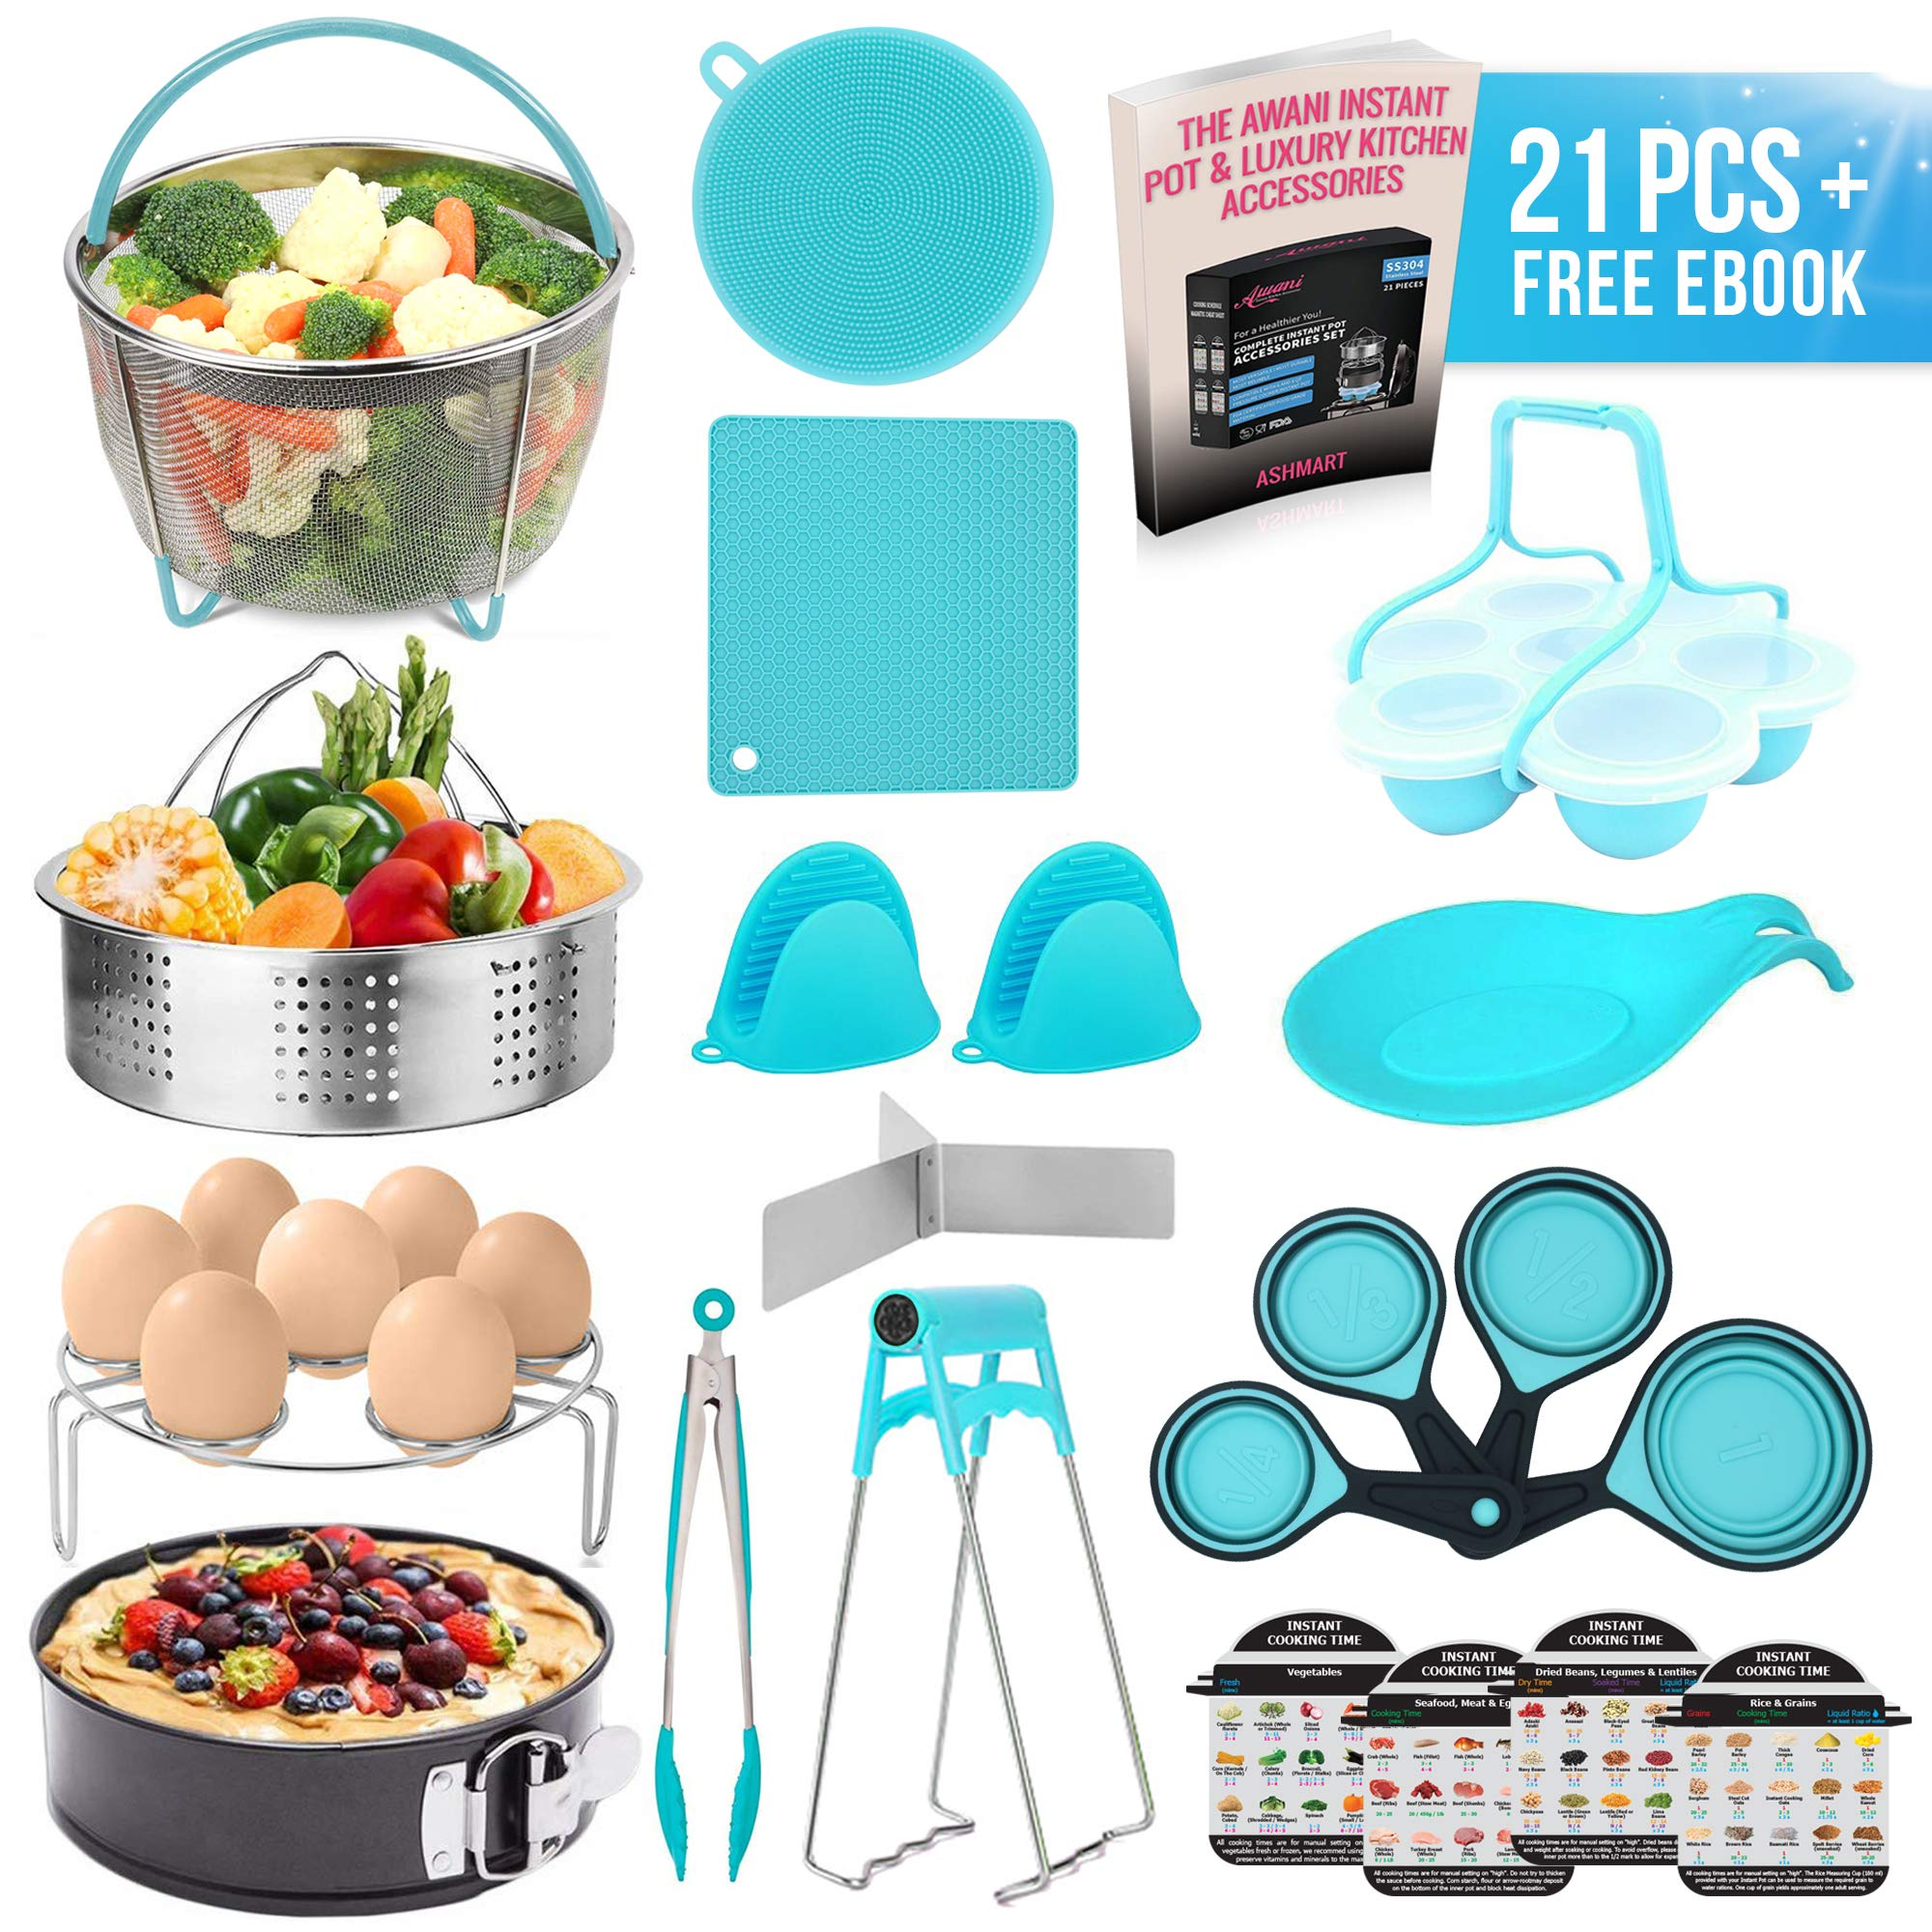 22 Pcs Instant Pot Accessories Set,Pressure Cooker(6,8qt),Steamer Basket,Silicone Mitts and Mats,Springform Pan,Egg Rack,Bites Mold,Spoon Holder,Plate Clip,Insta Cheat Sheets,Measuring Cups,Tong,Brush